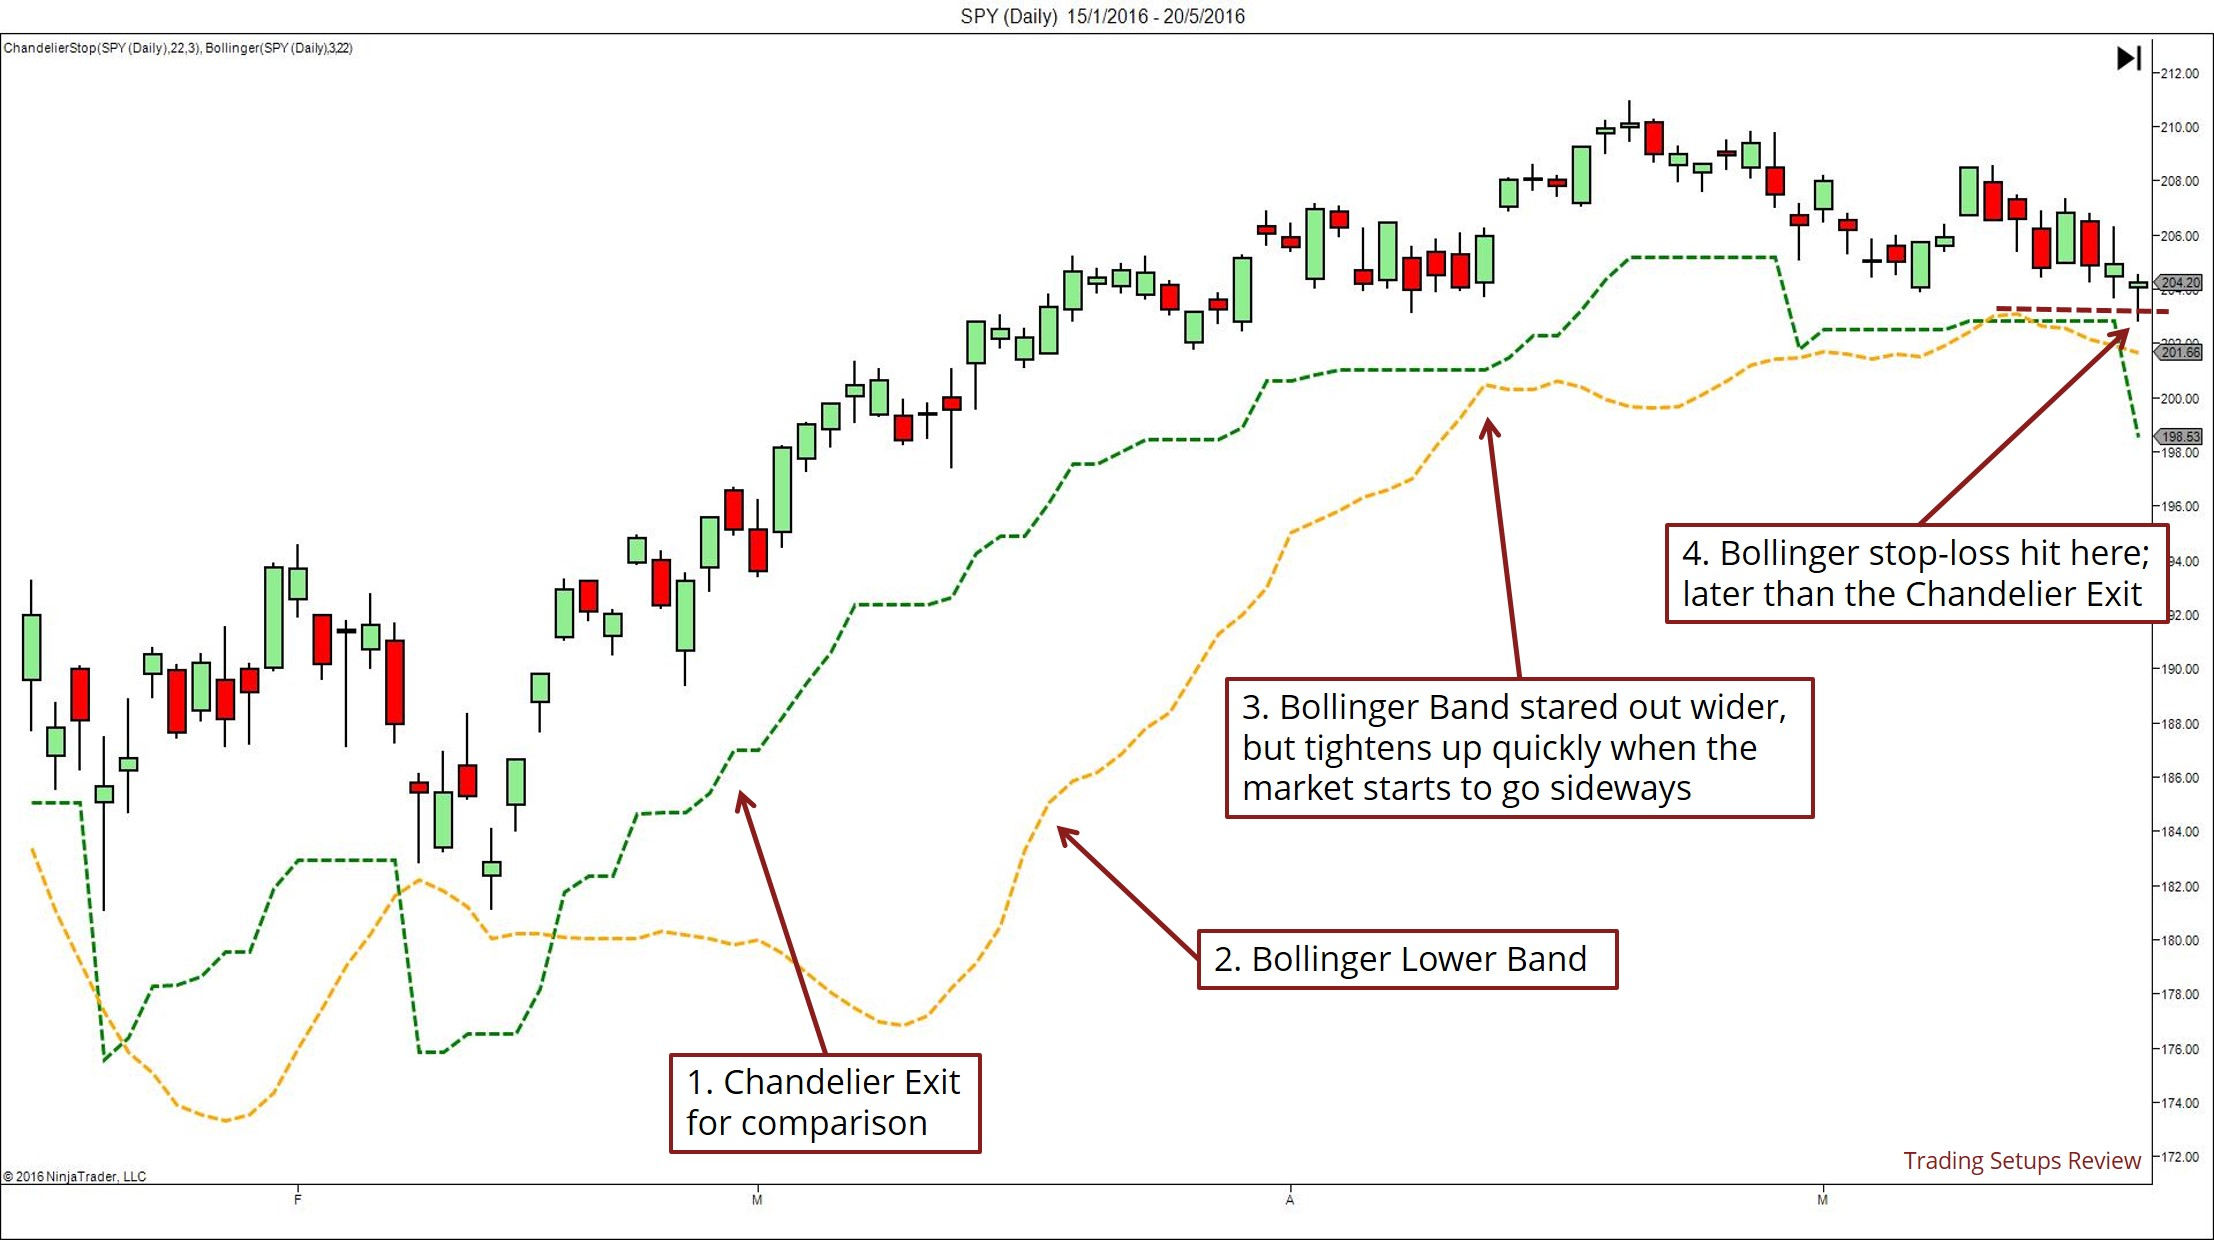 Bollinger Bands as Volatility Stop Loss